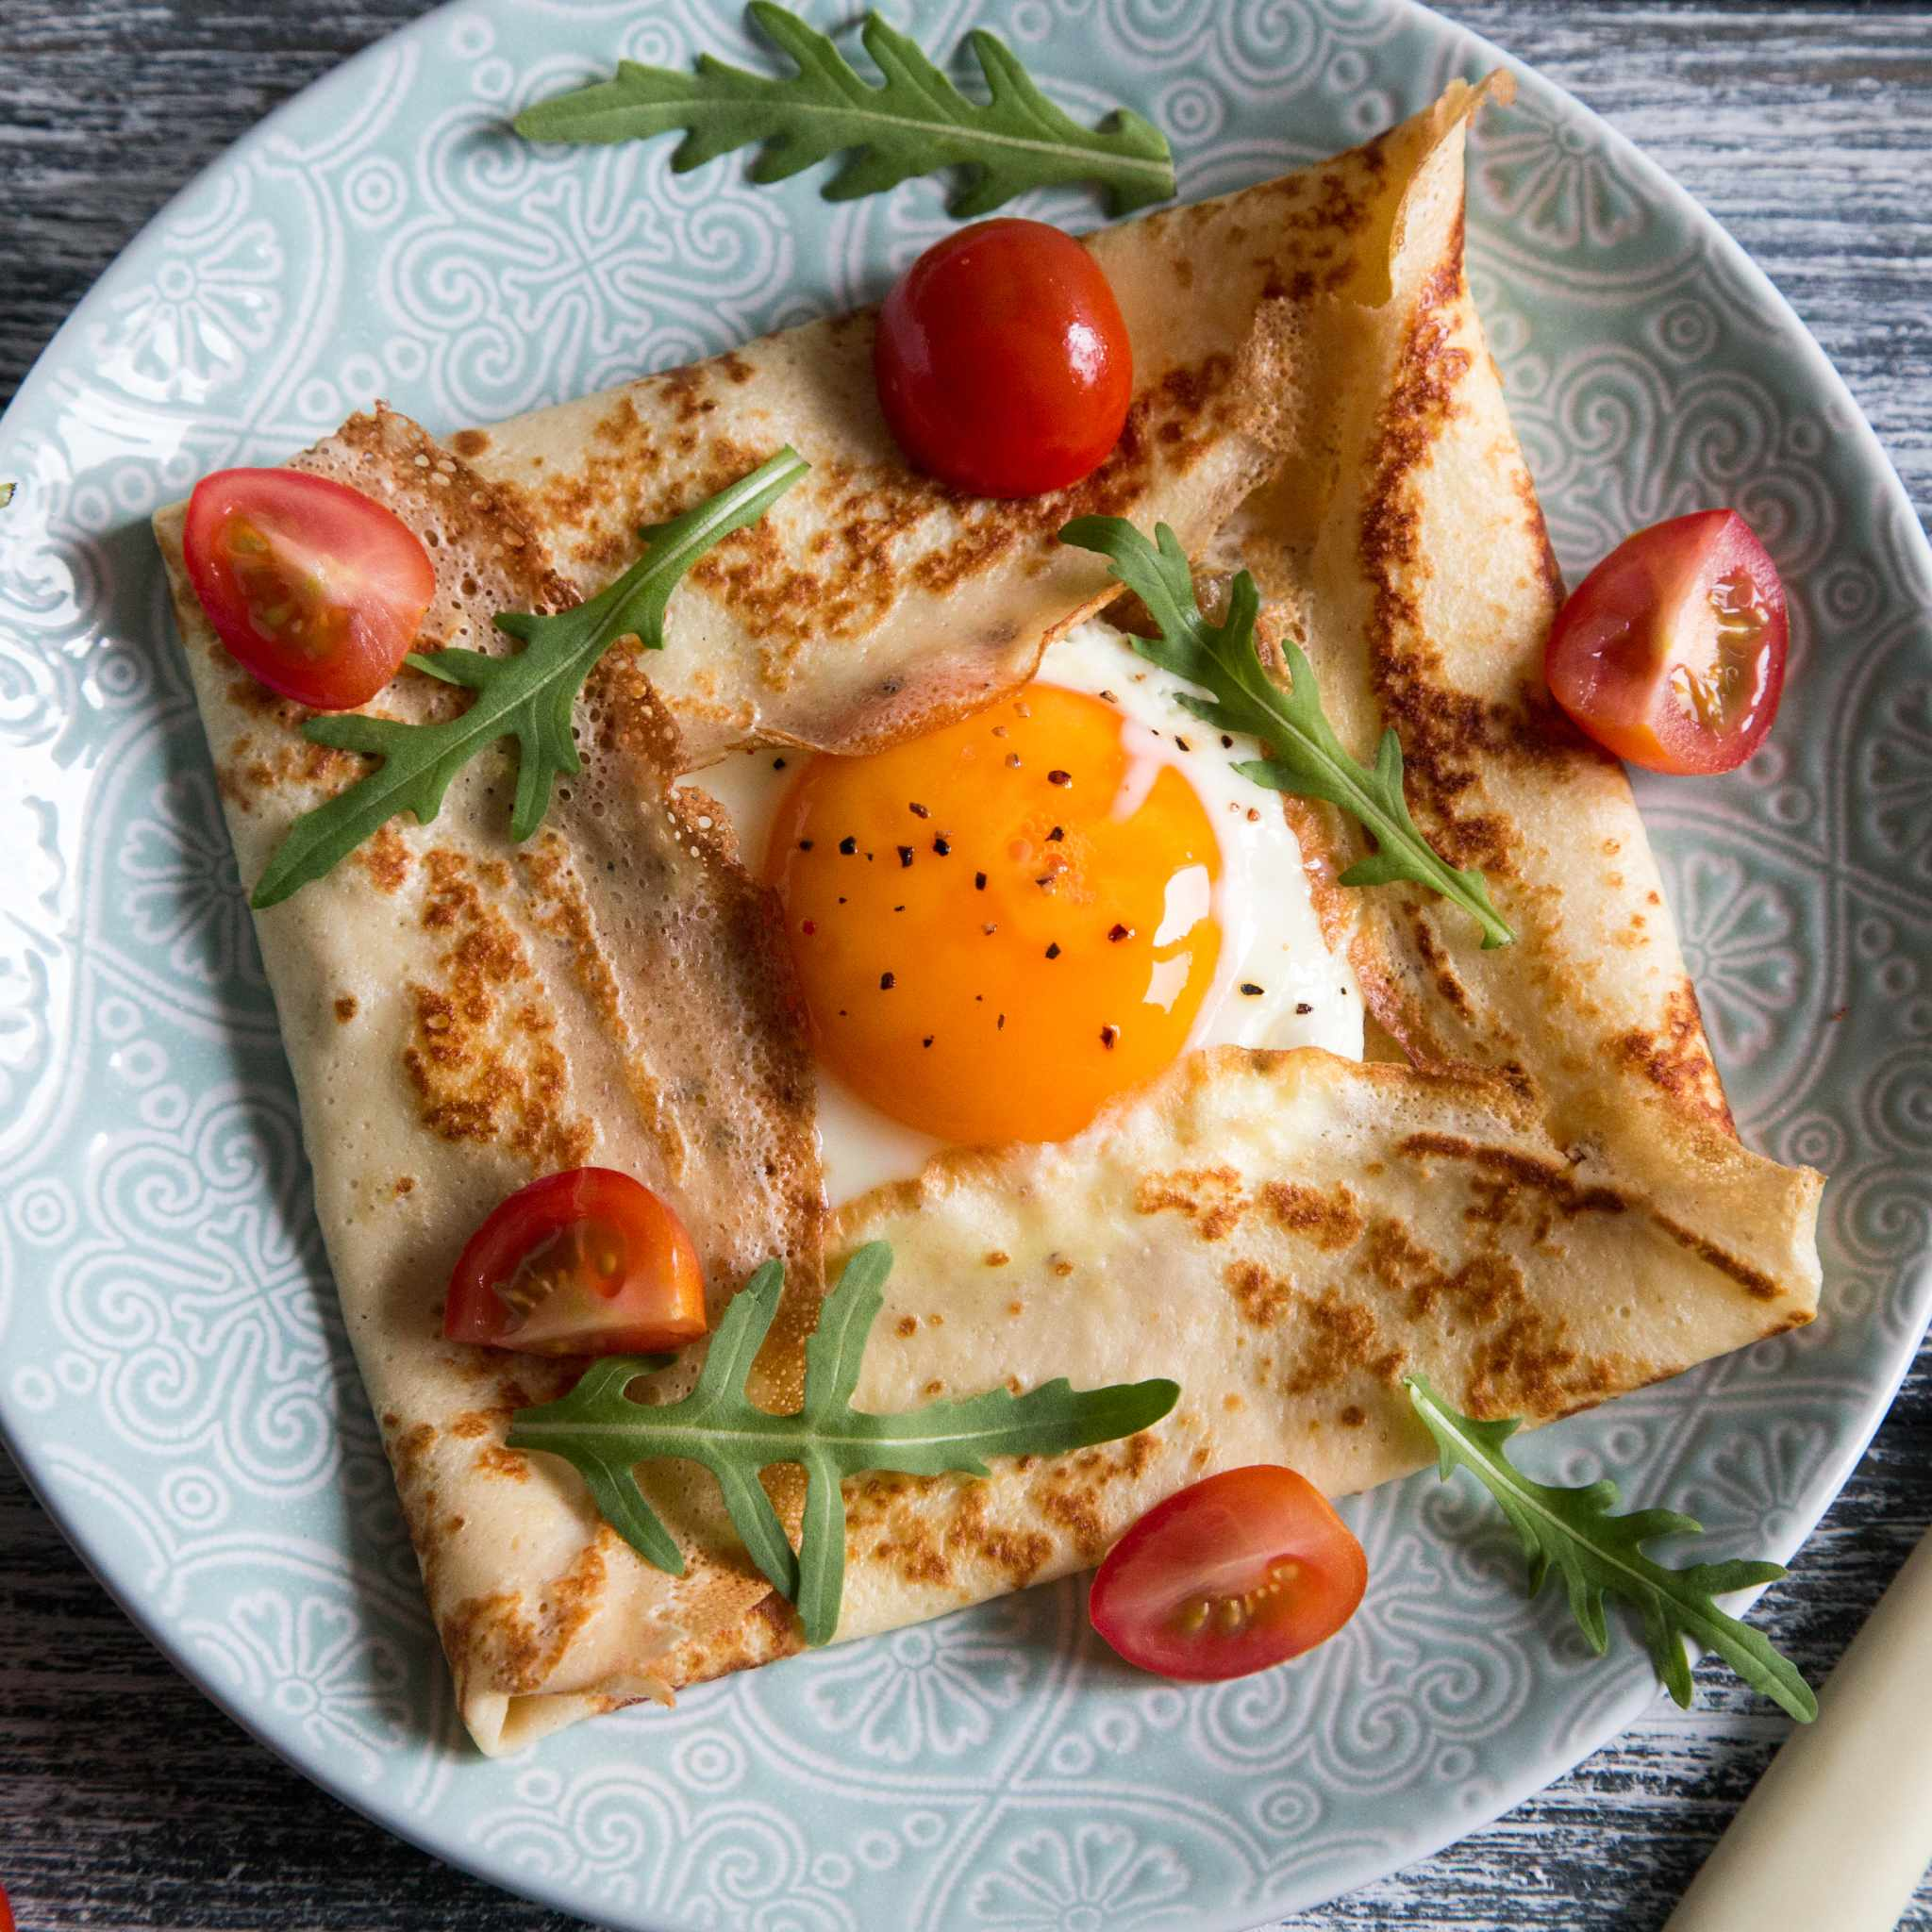 Savoury breakfast crepe filled with egg and scattered with chopped cherry tomatoes and rocket